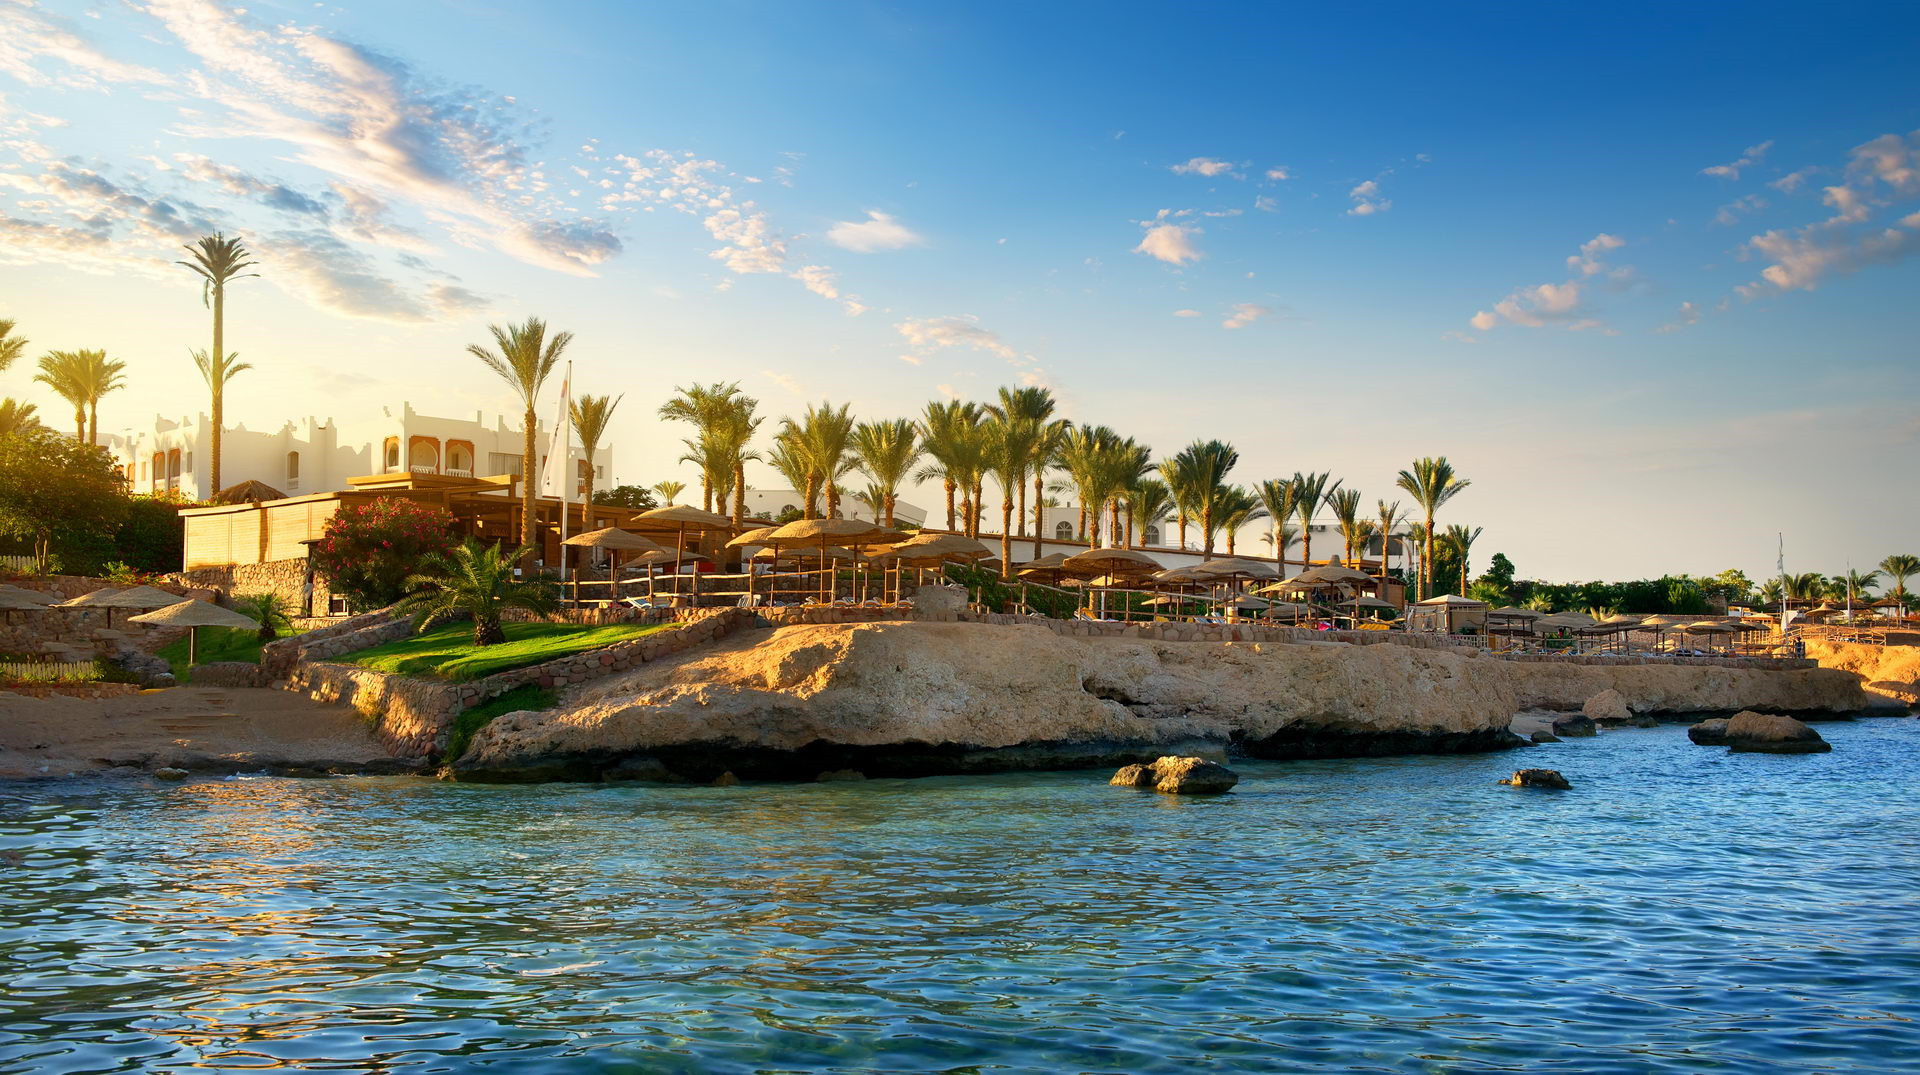 SHARM EL SHEIKH -Nabq Bay